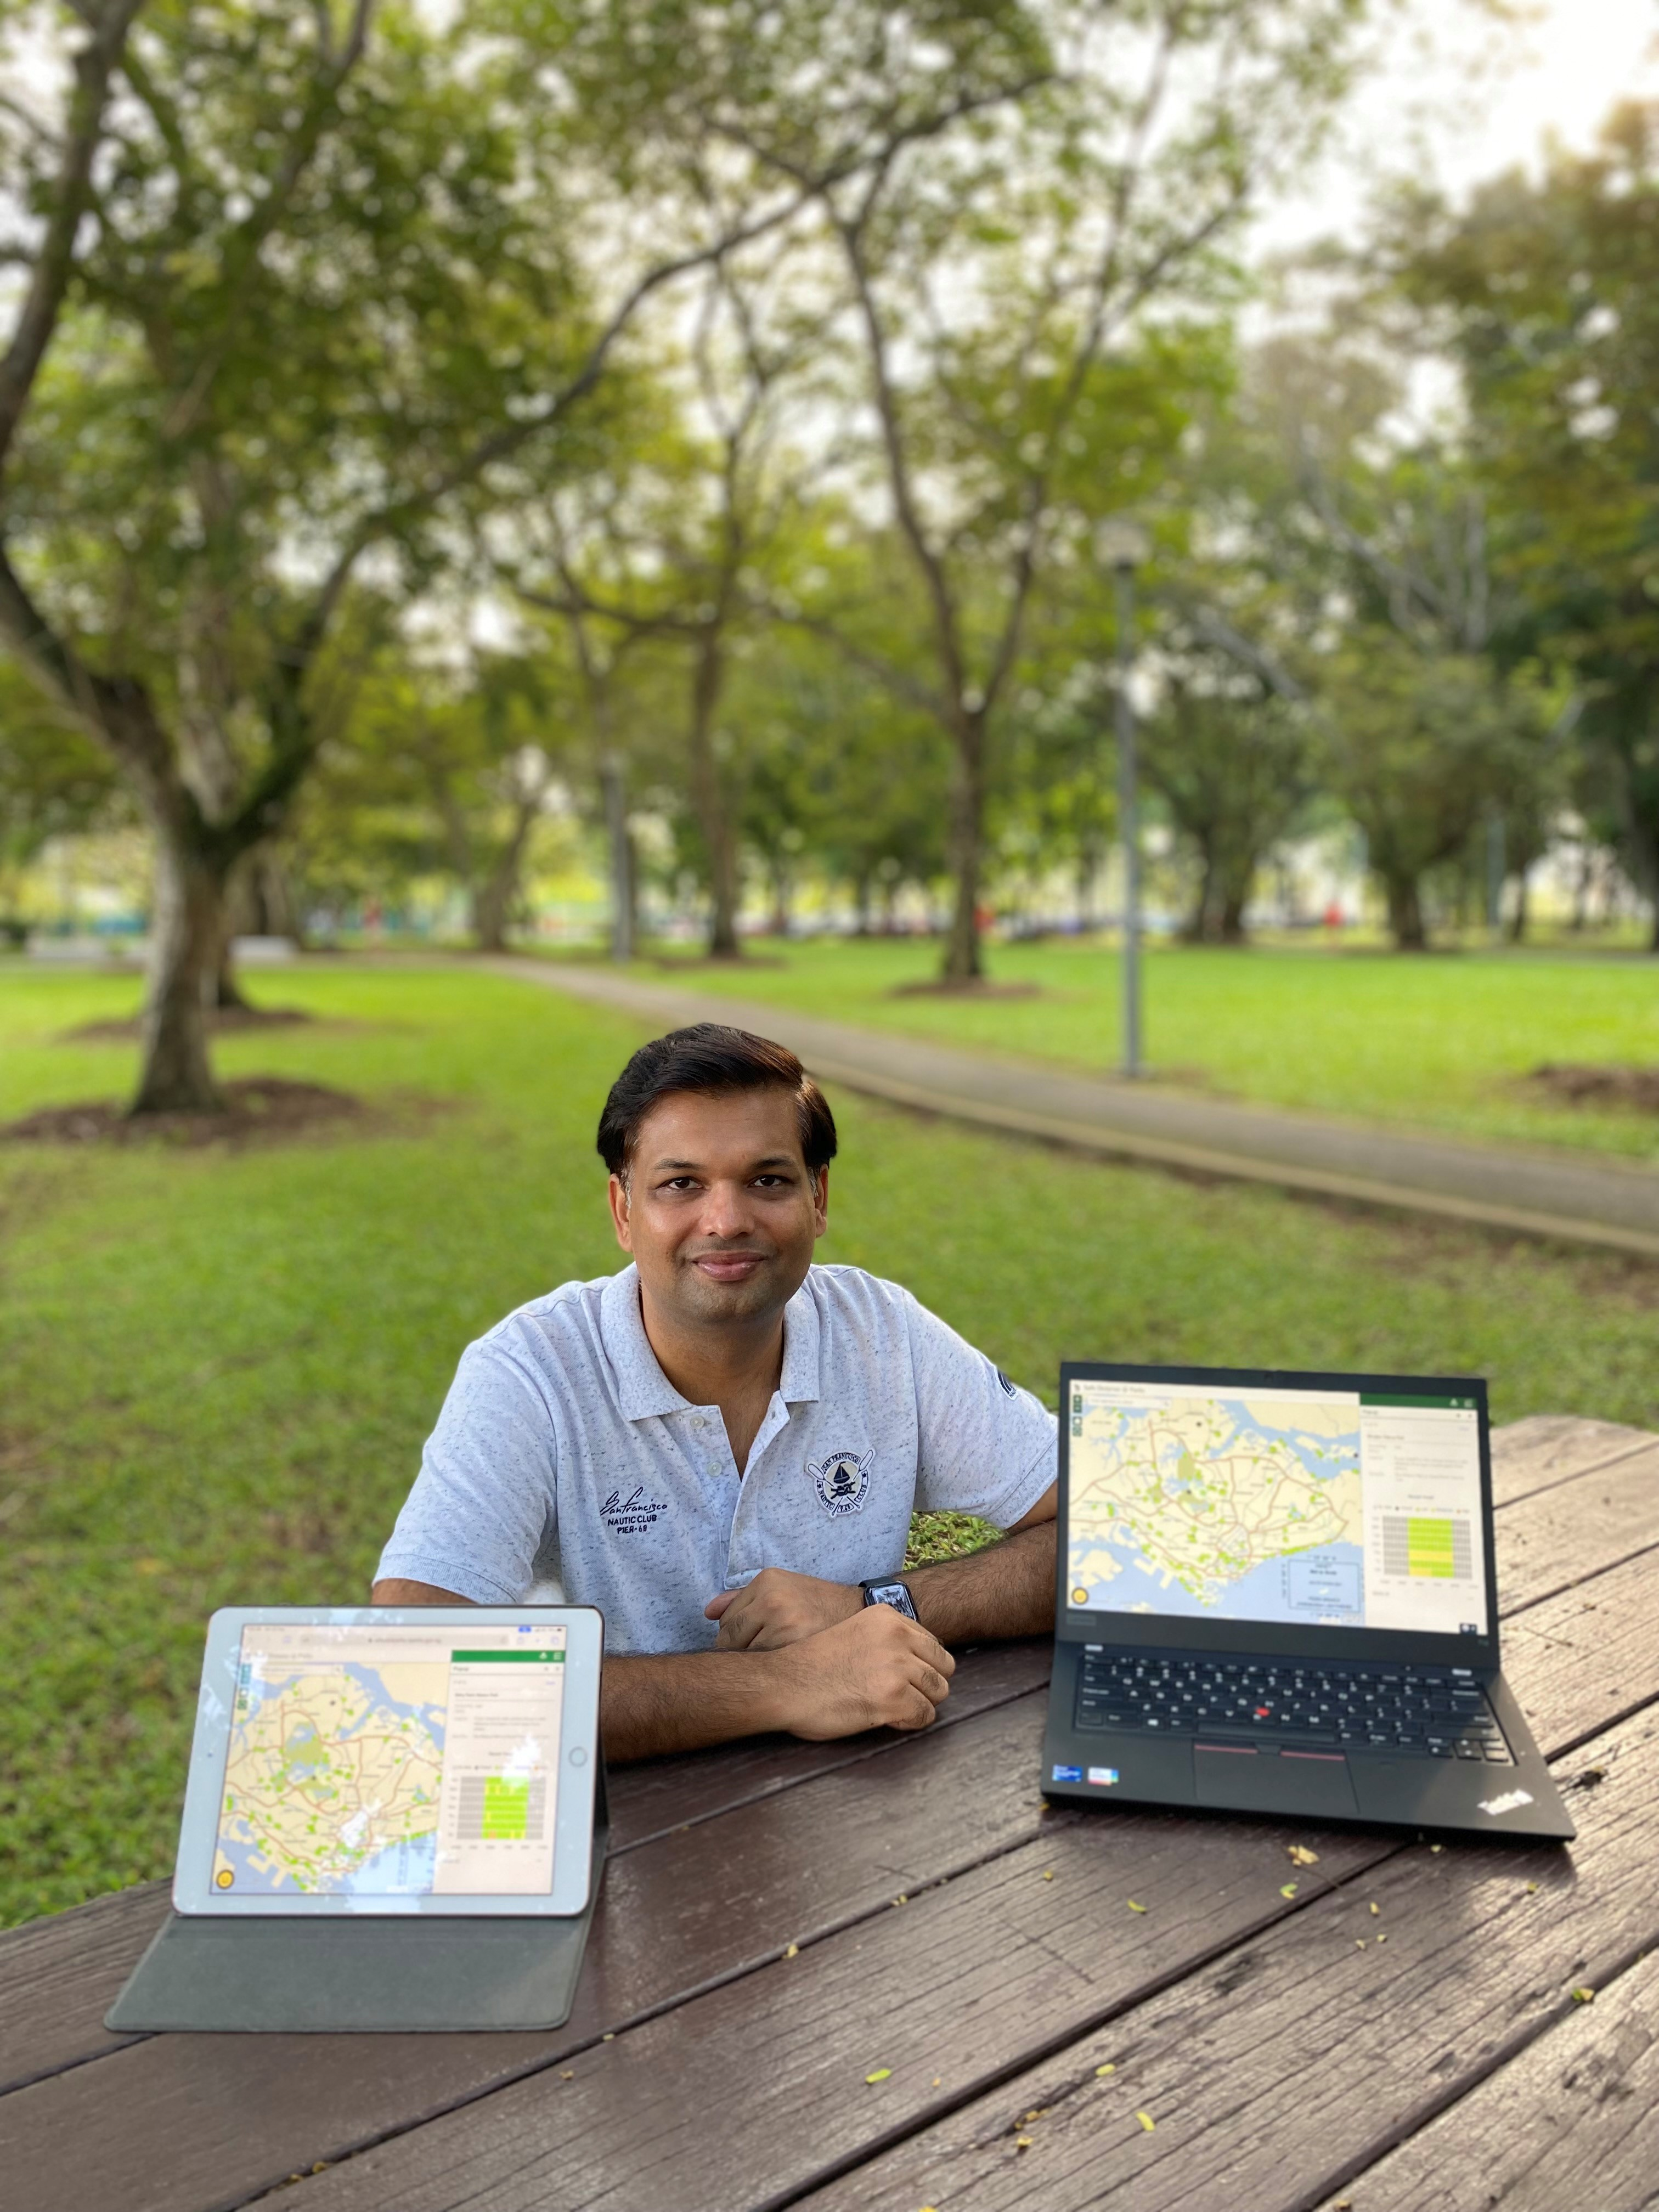 Abishek who worked on the Safe Distance @ Parks